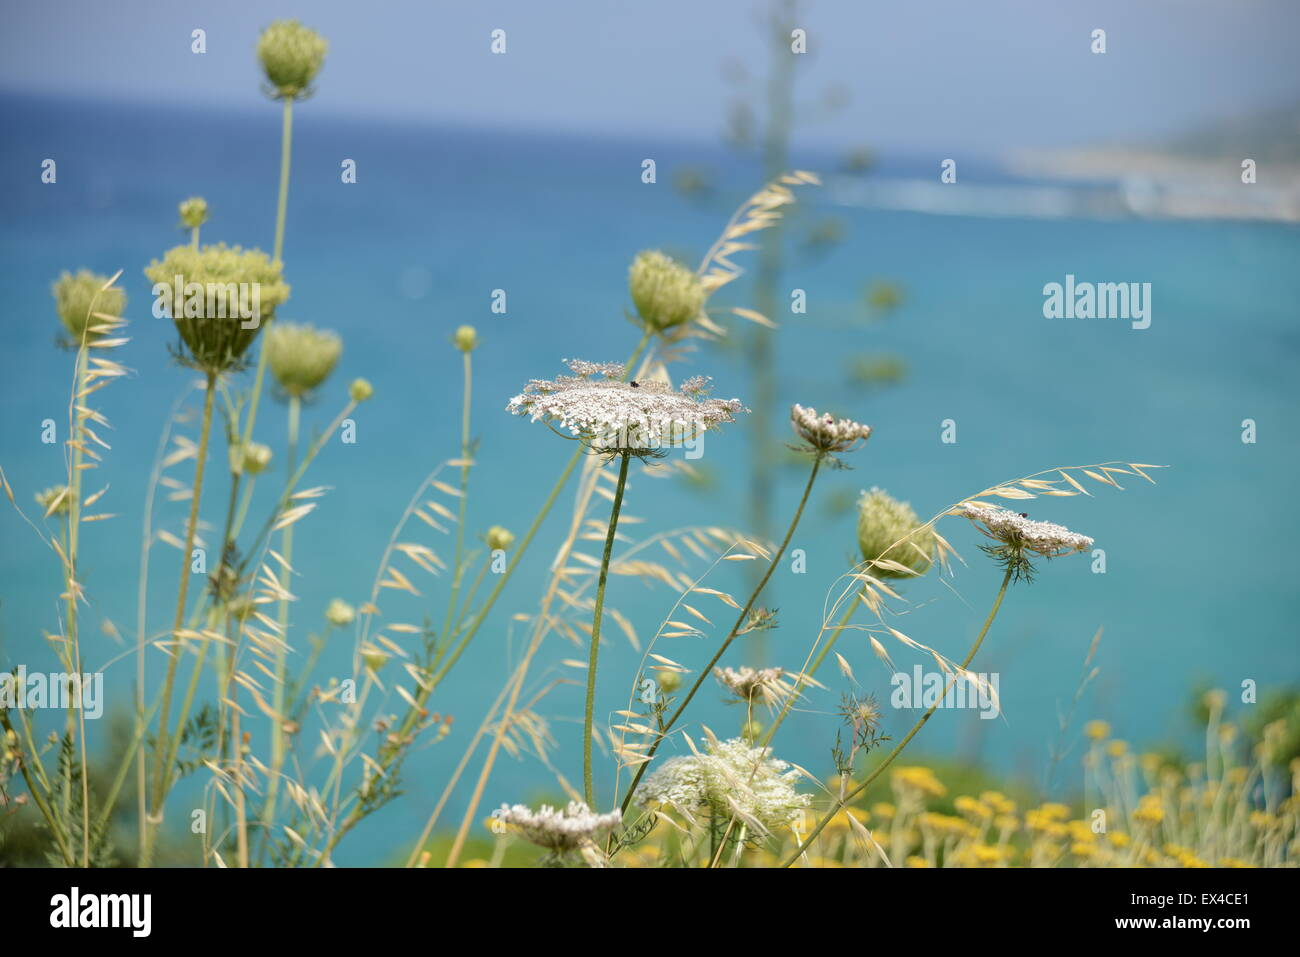 Queens Anne's lace flowers grow by the Aegean sea - Stock Image